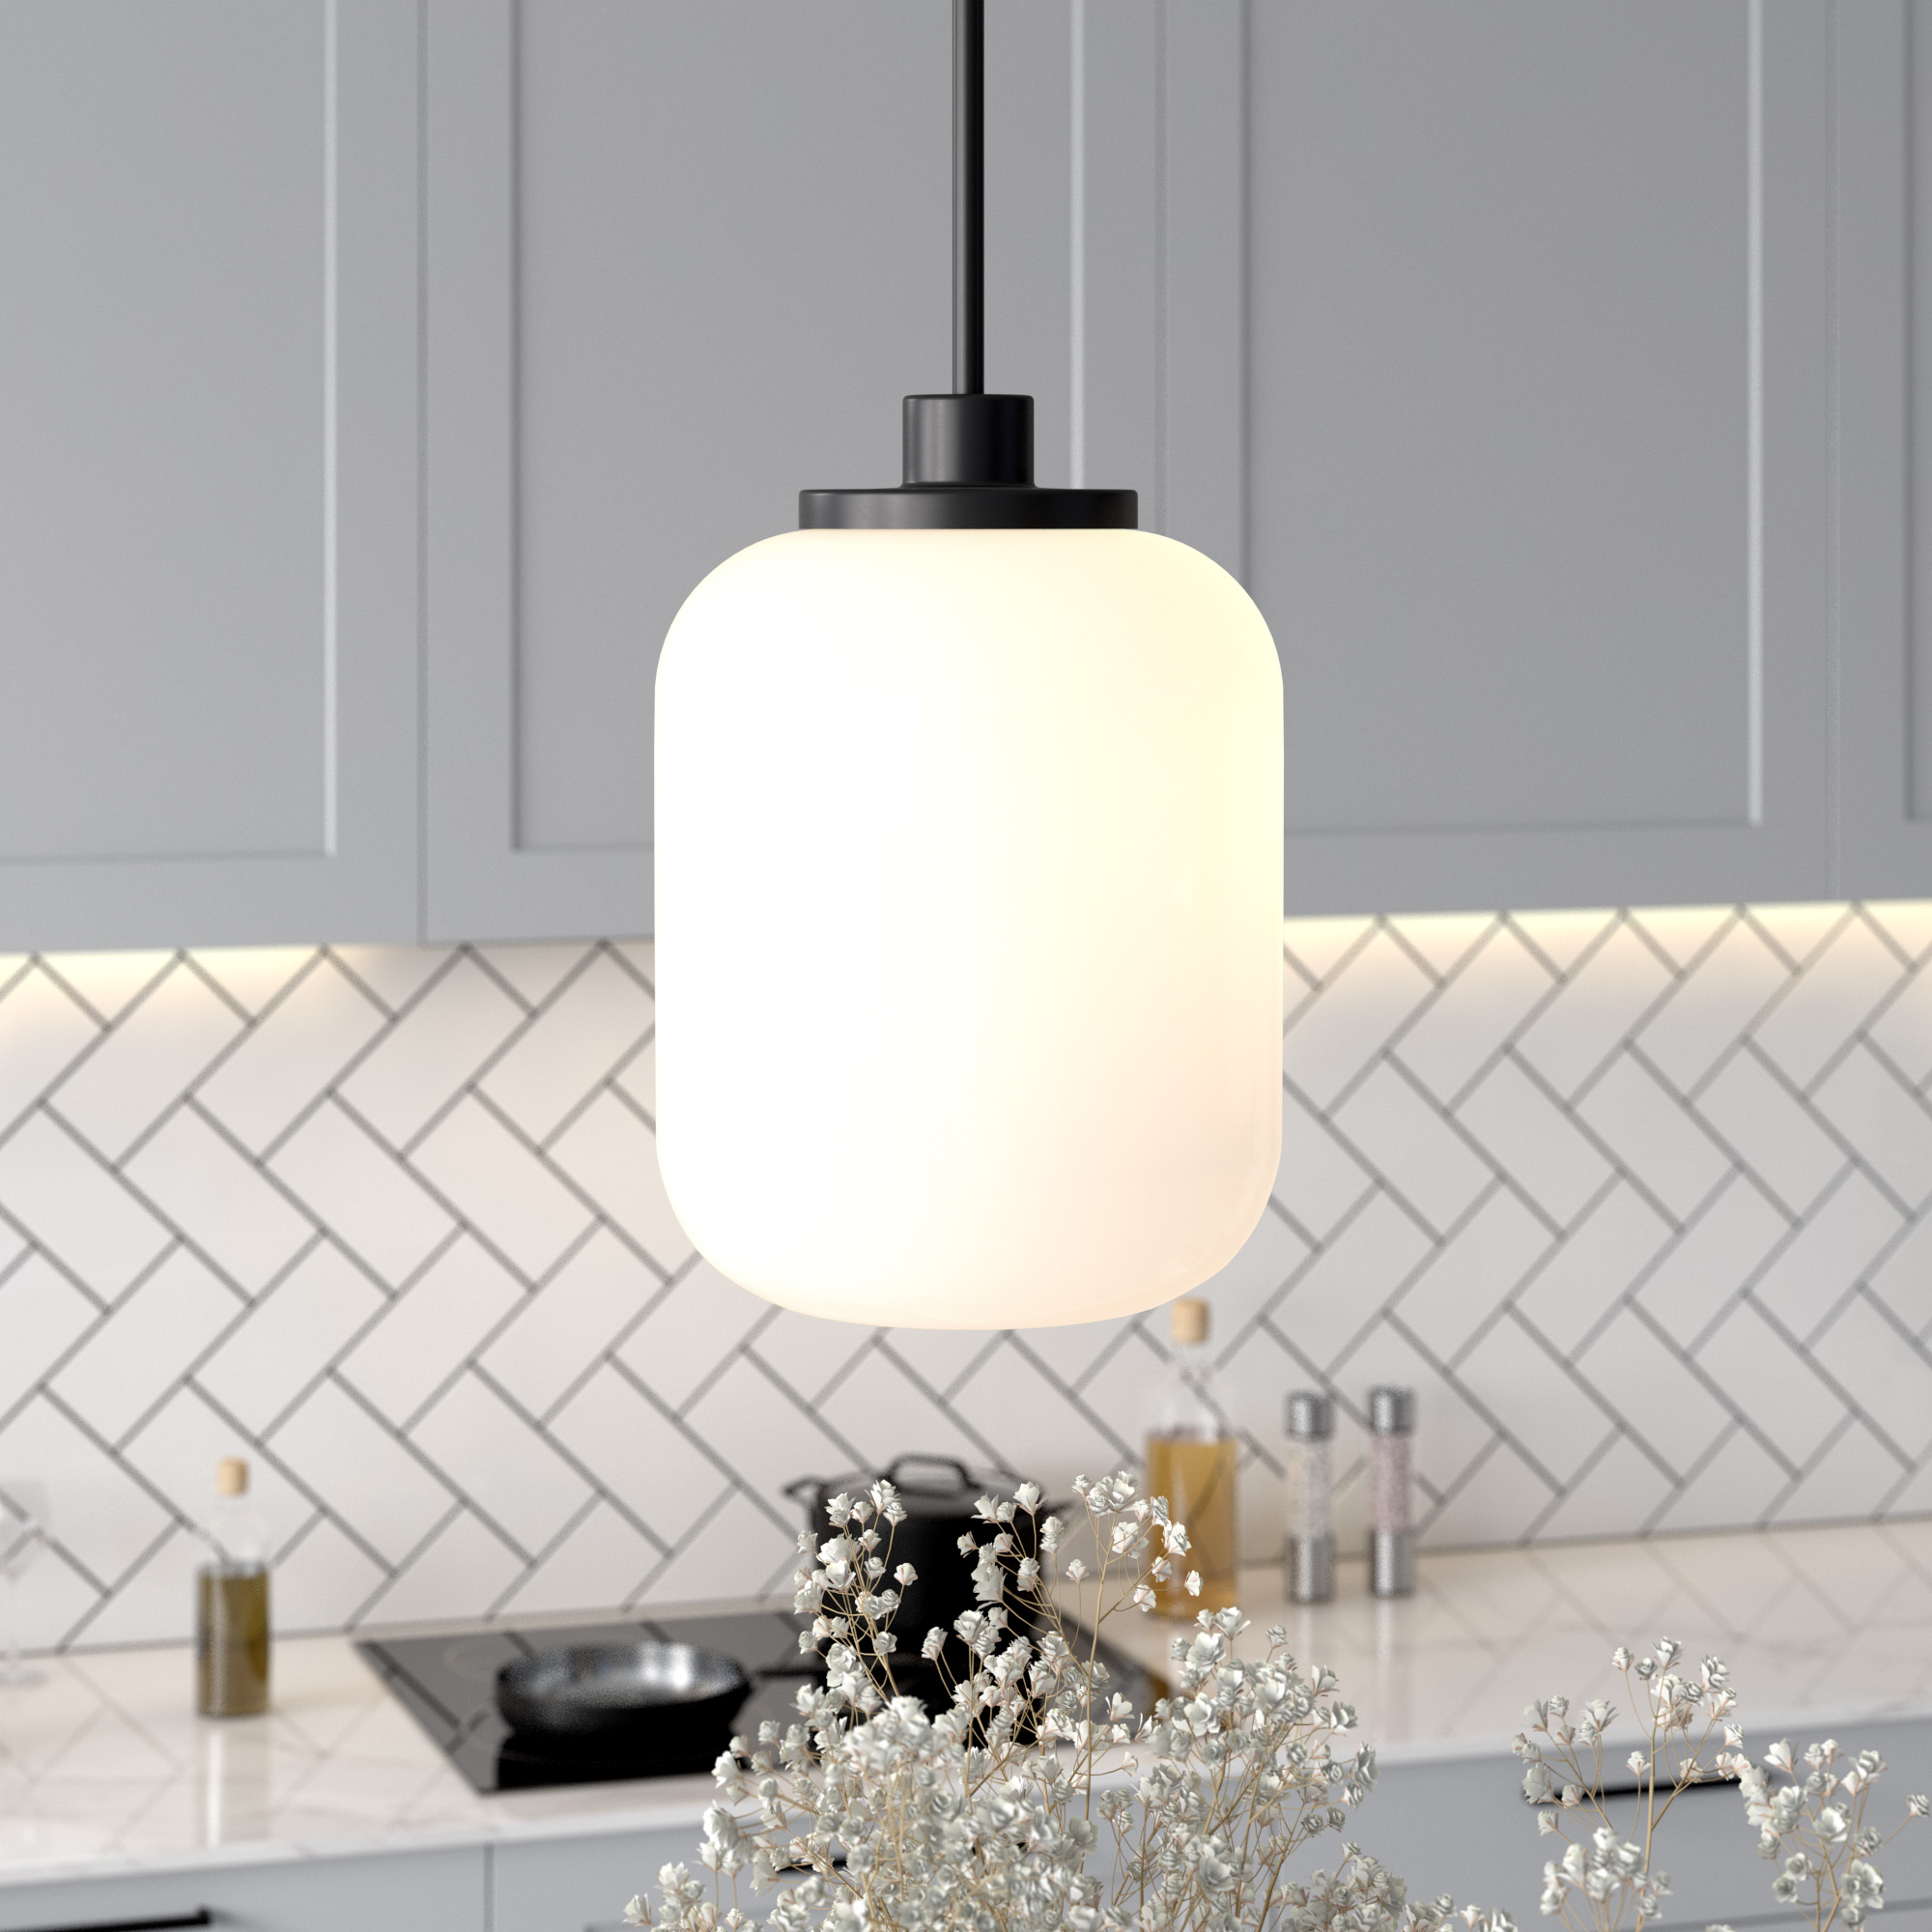 Appletree Pendant Light in Blackened Bronze with Milk Glass